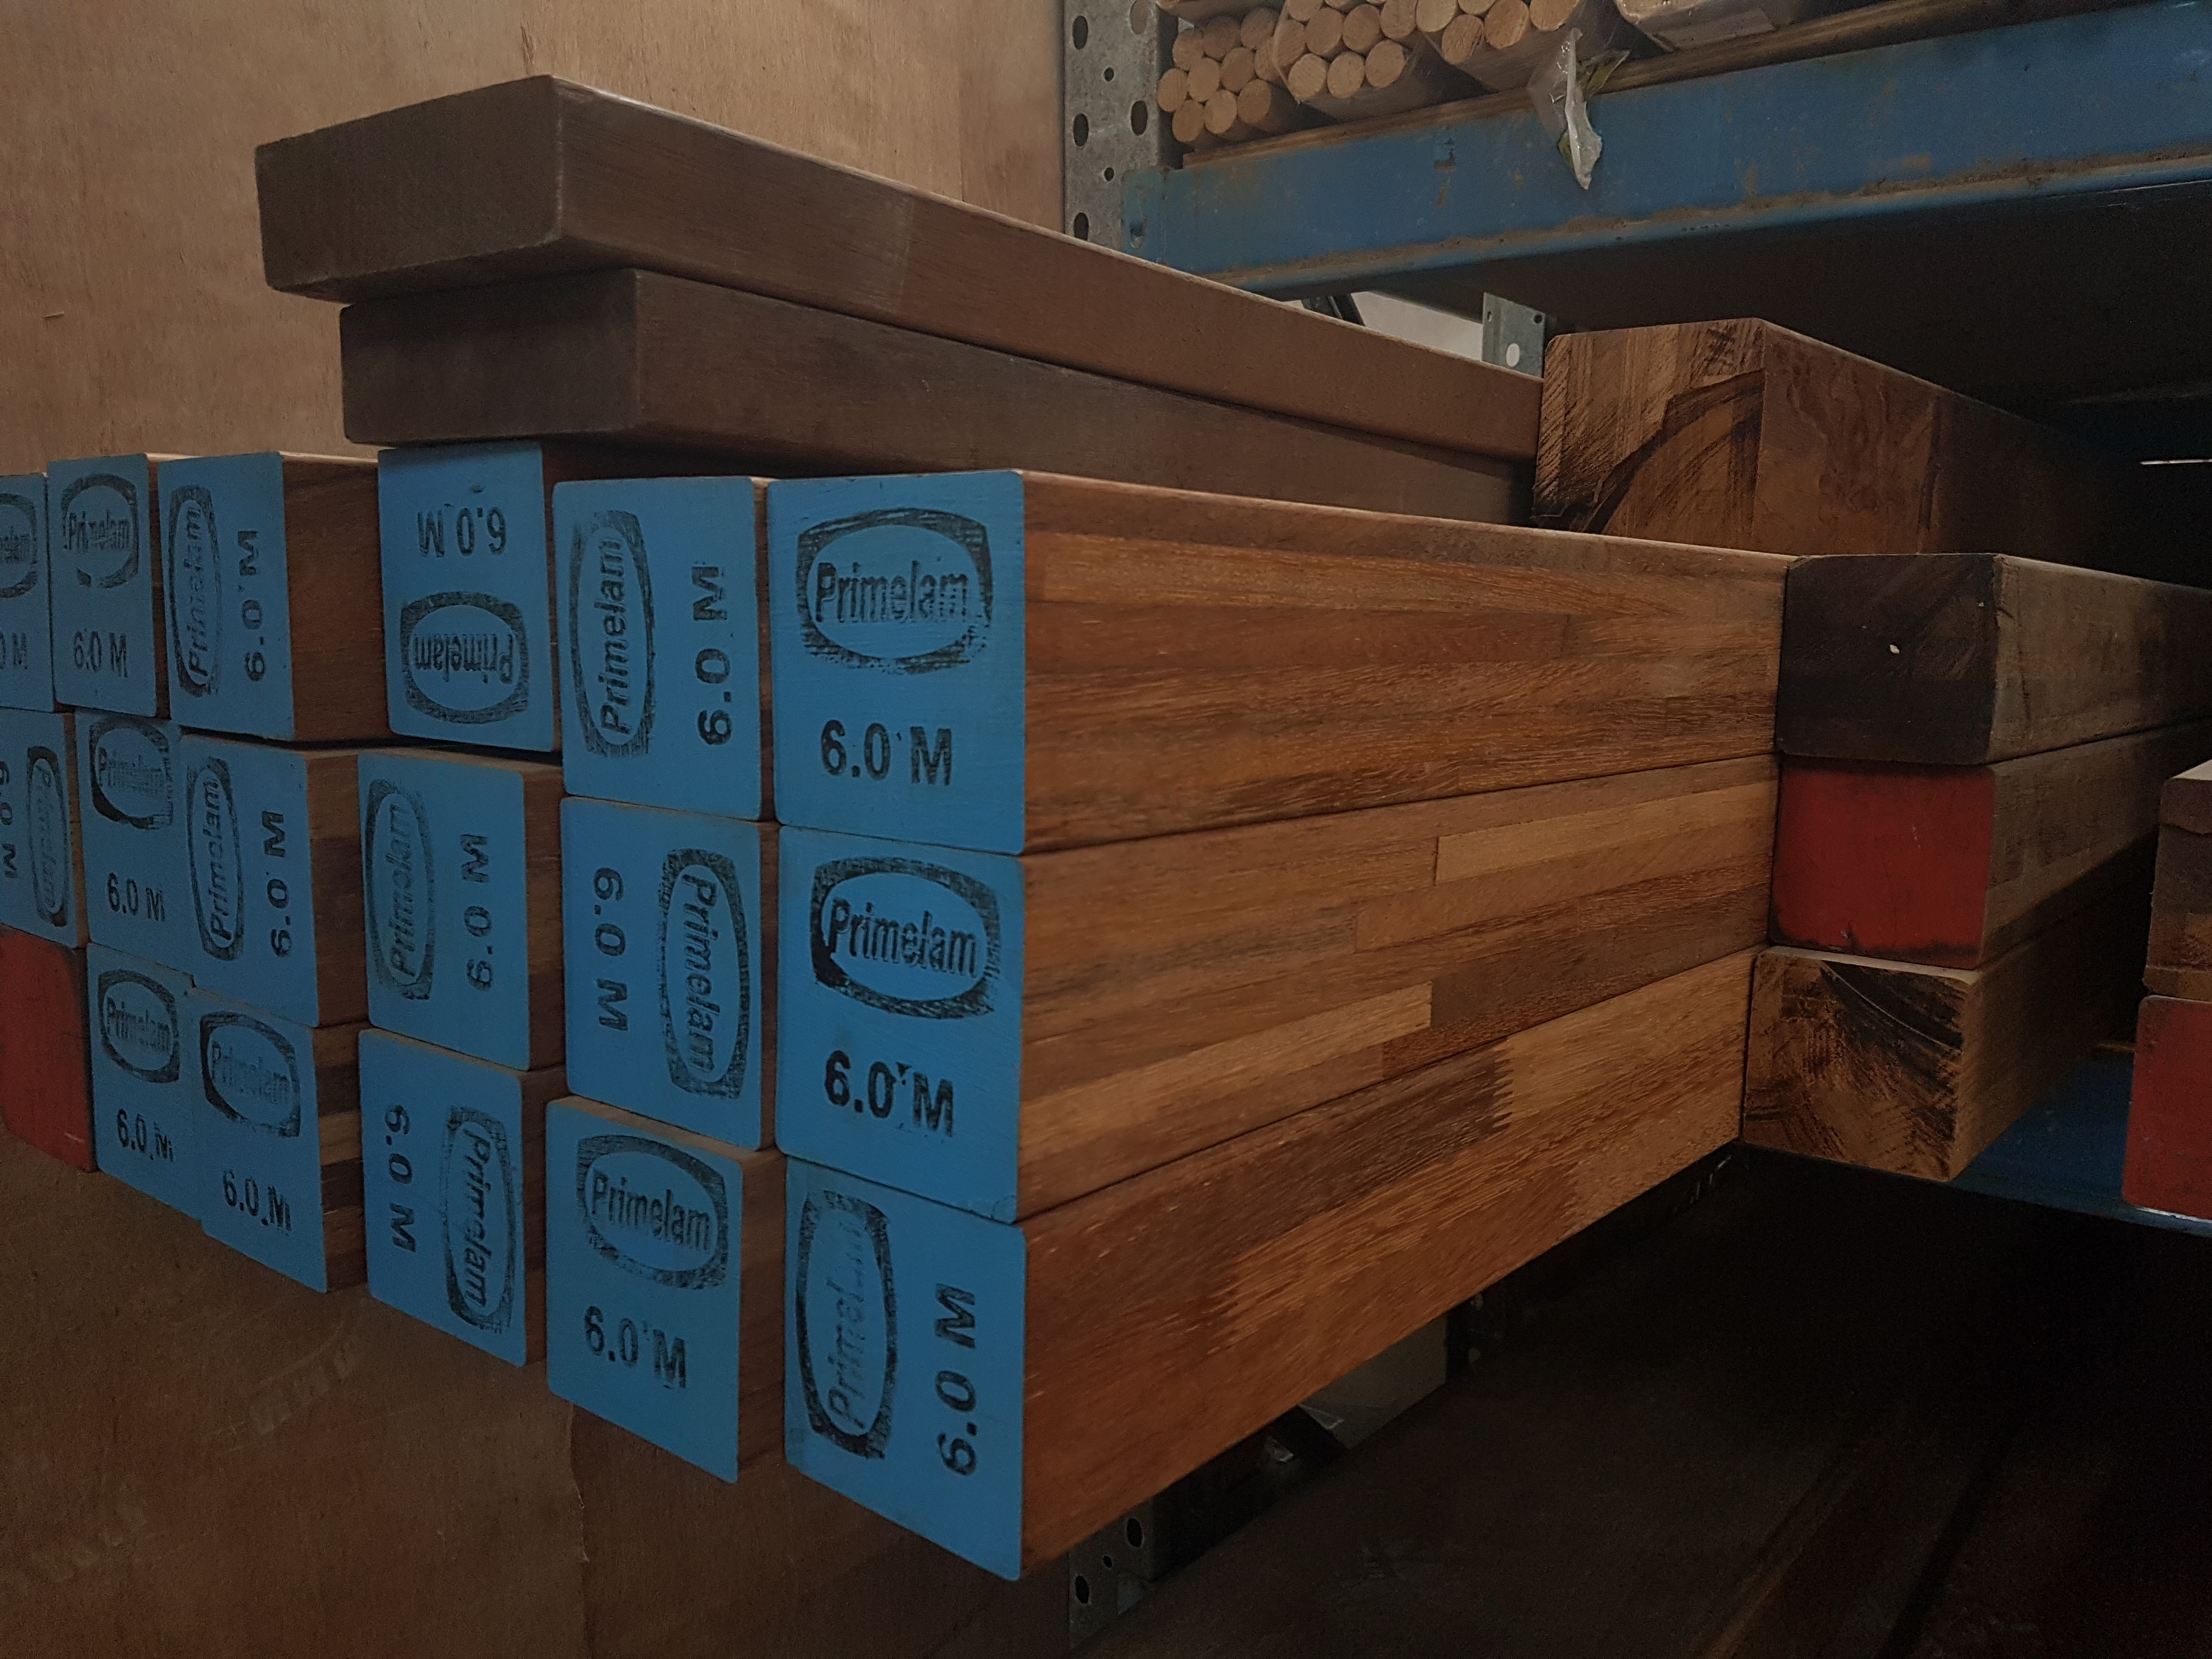 Merbau Hardwood f27 stuctural Post product available in Sydney from Advanced timber & Hardware - Strathfield South